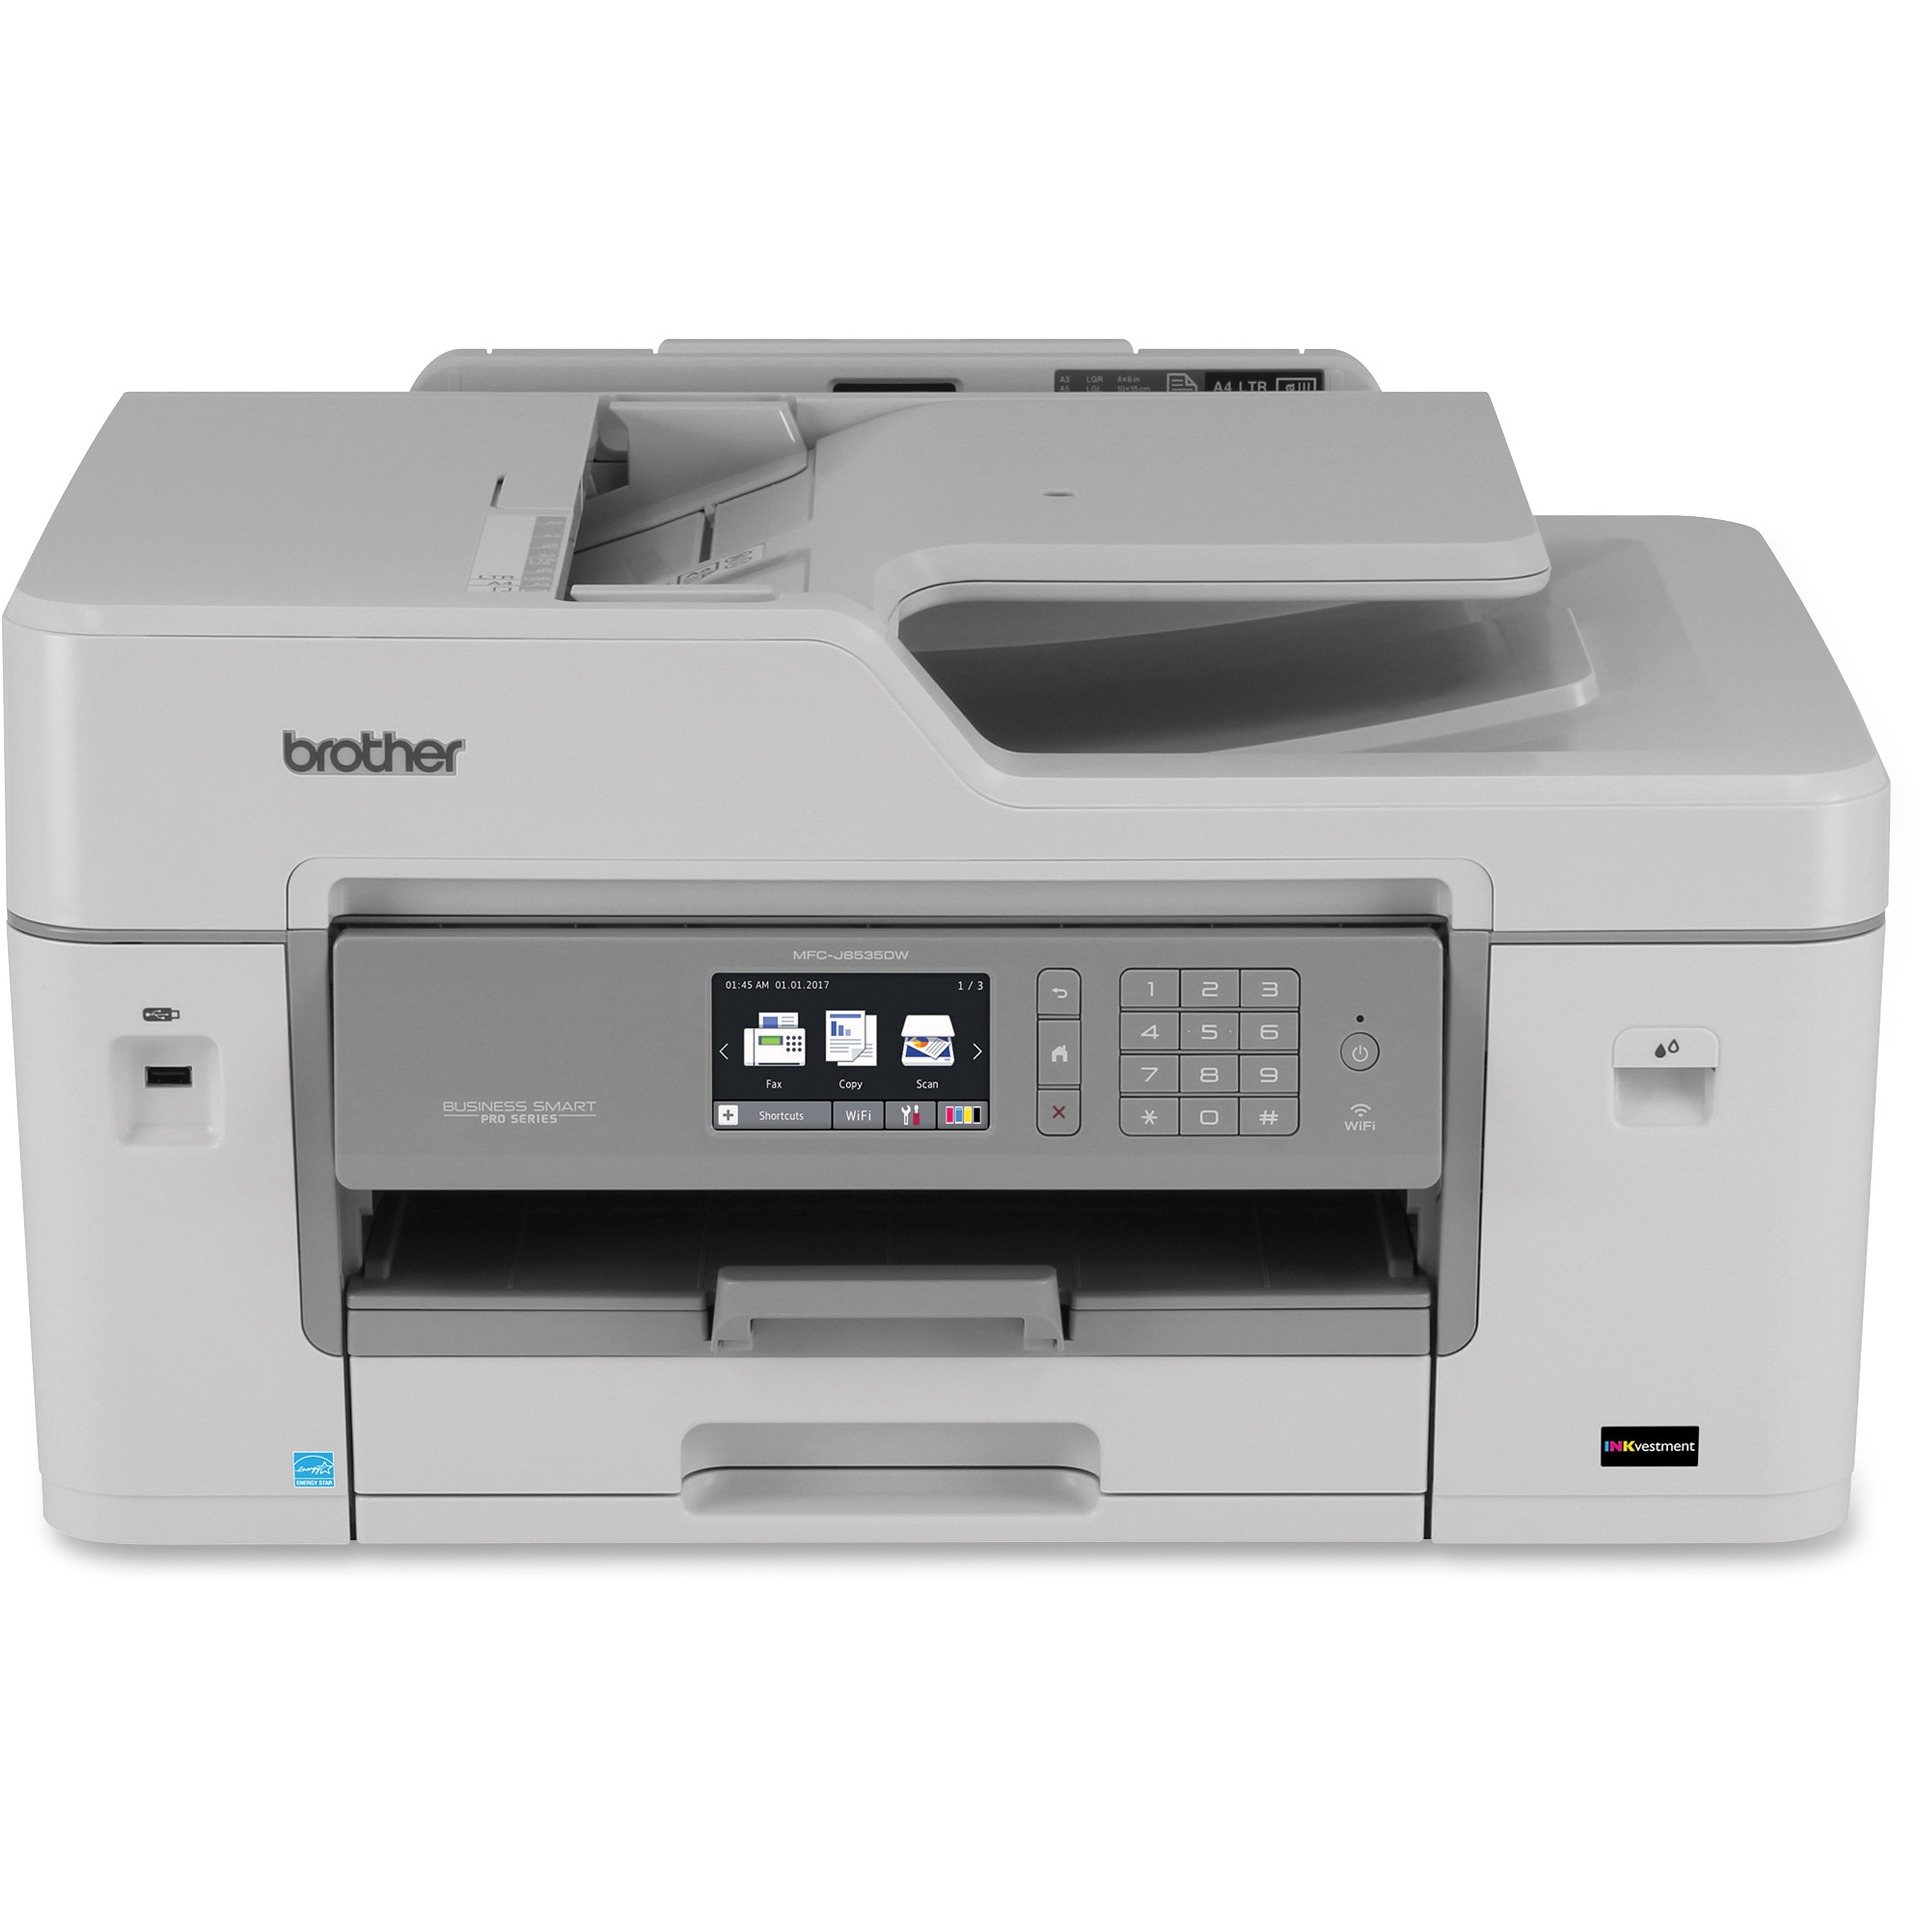 Brother Business Smart Pro MFC-J6535DW Multifunction Printer - Color - Inkjet - Duplex